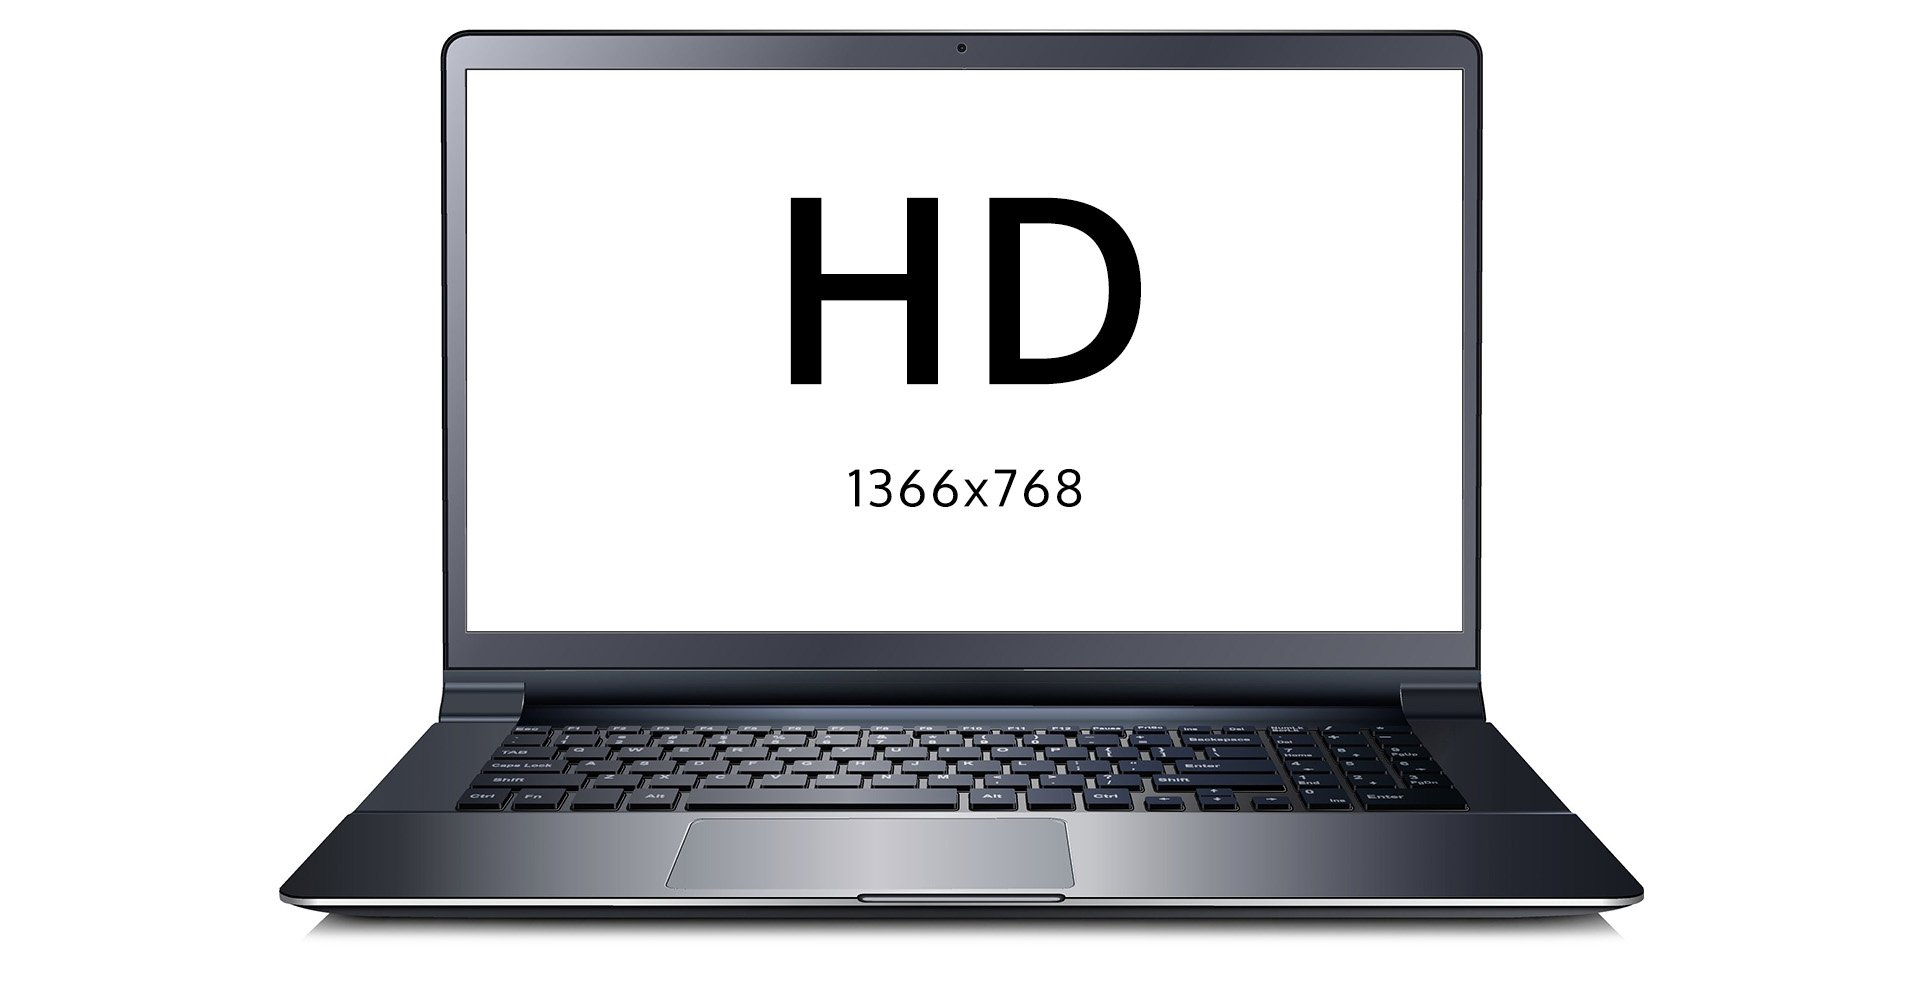 Fujitsu LifeBook A357 (S26391K425V300) 24 GB RAM/ 256 GB SSD/ Windows 10 Pro                             HD 1366x768 resolutsioon